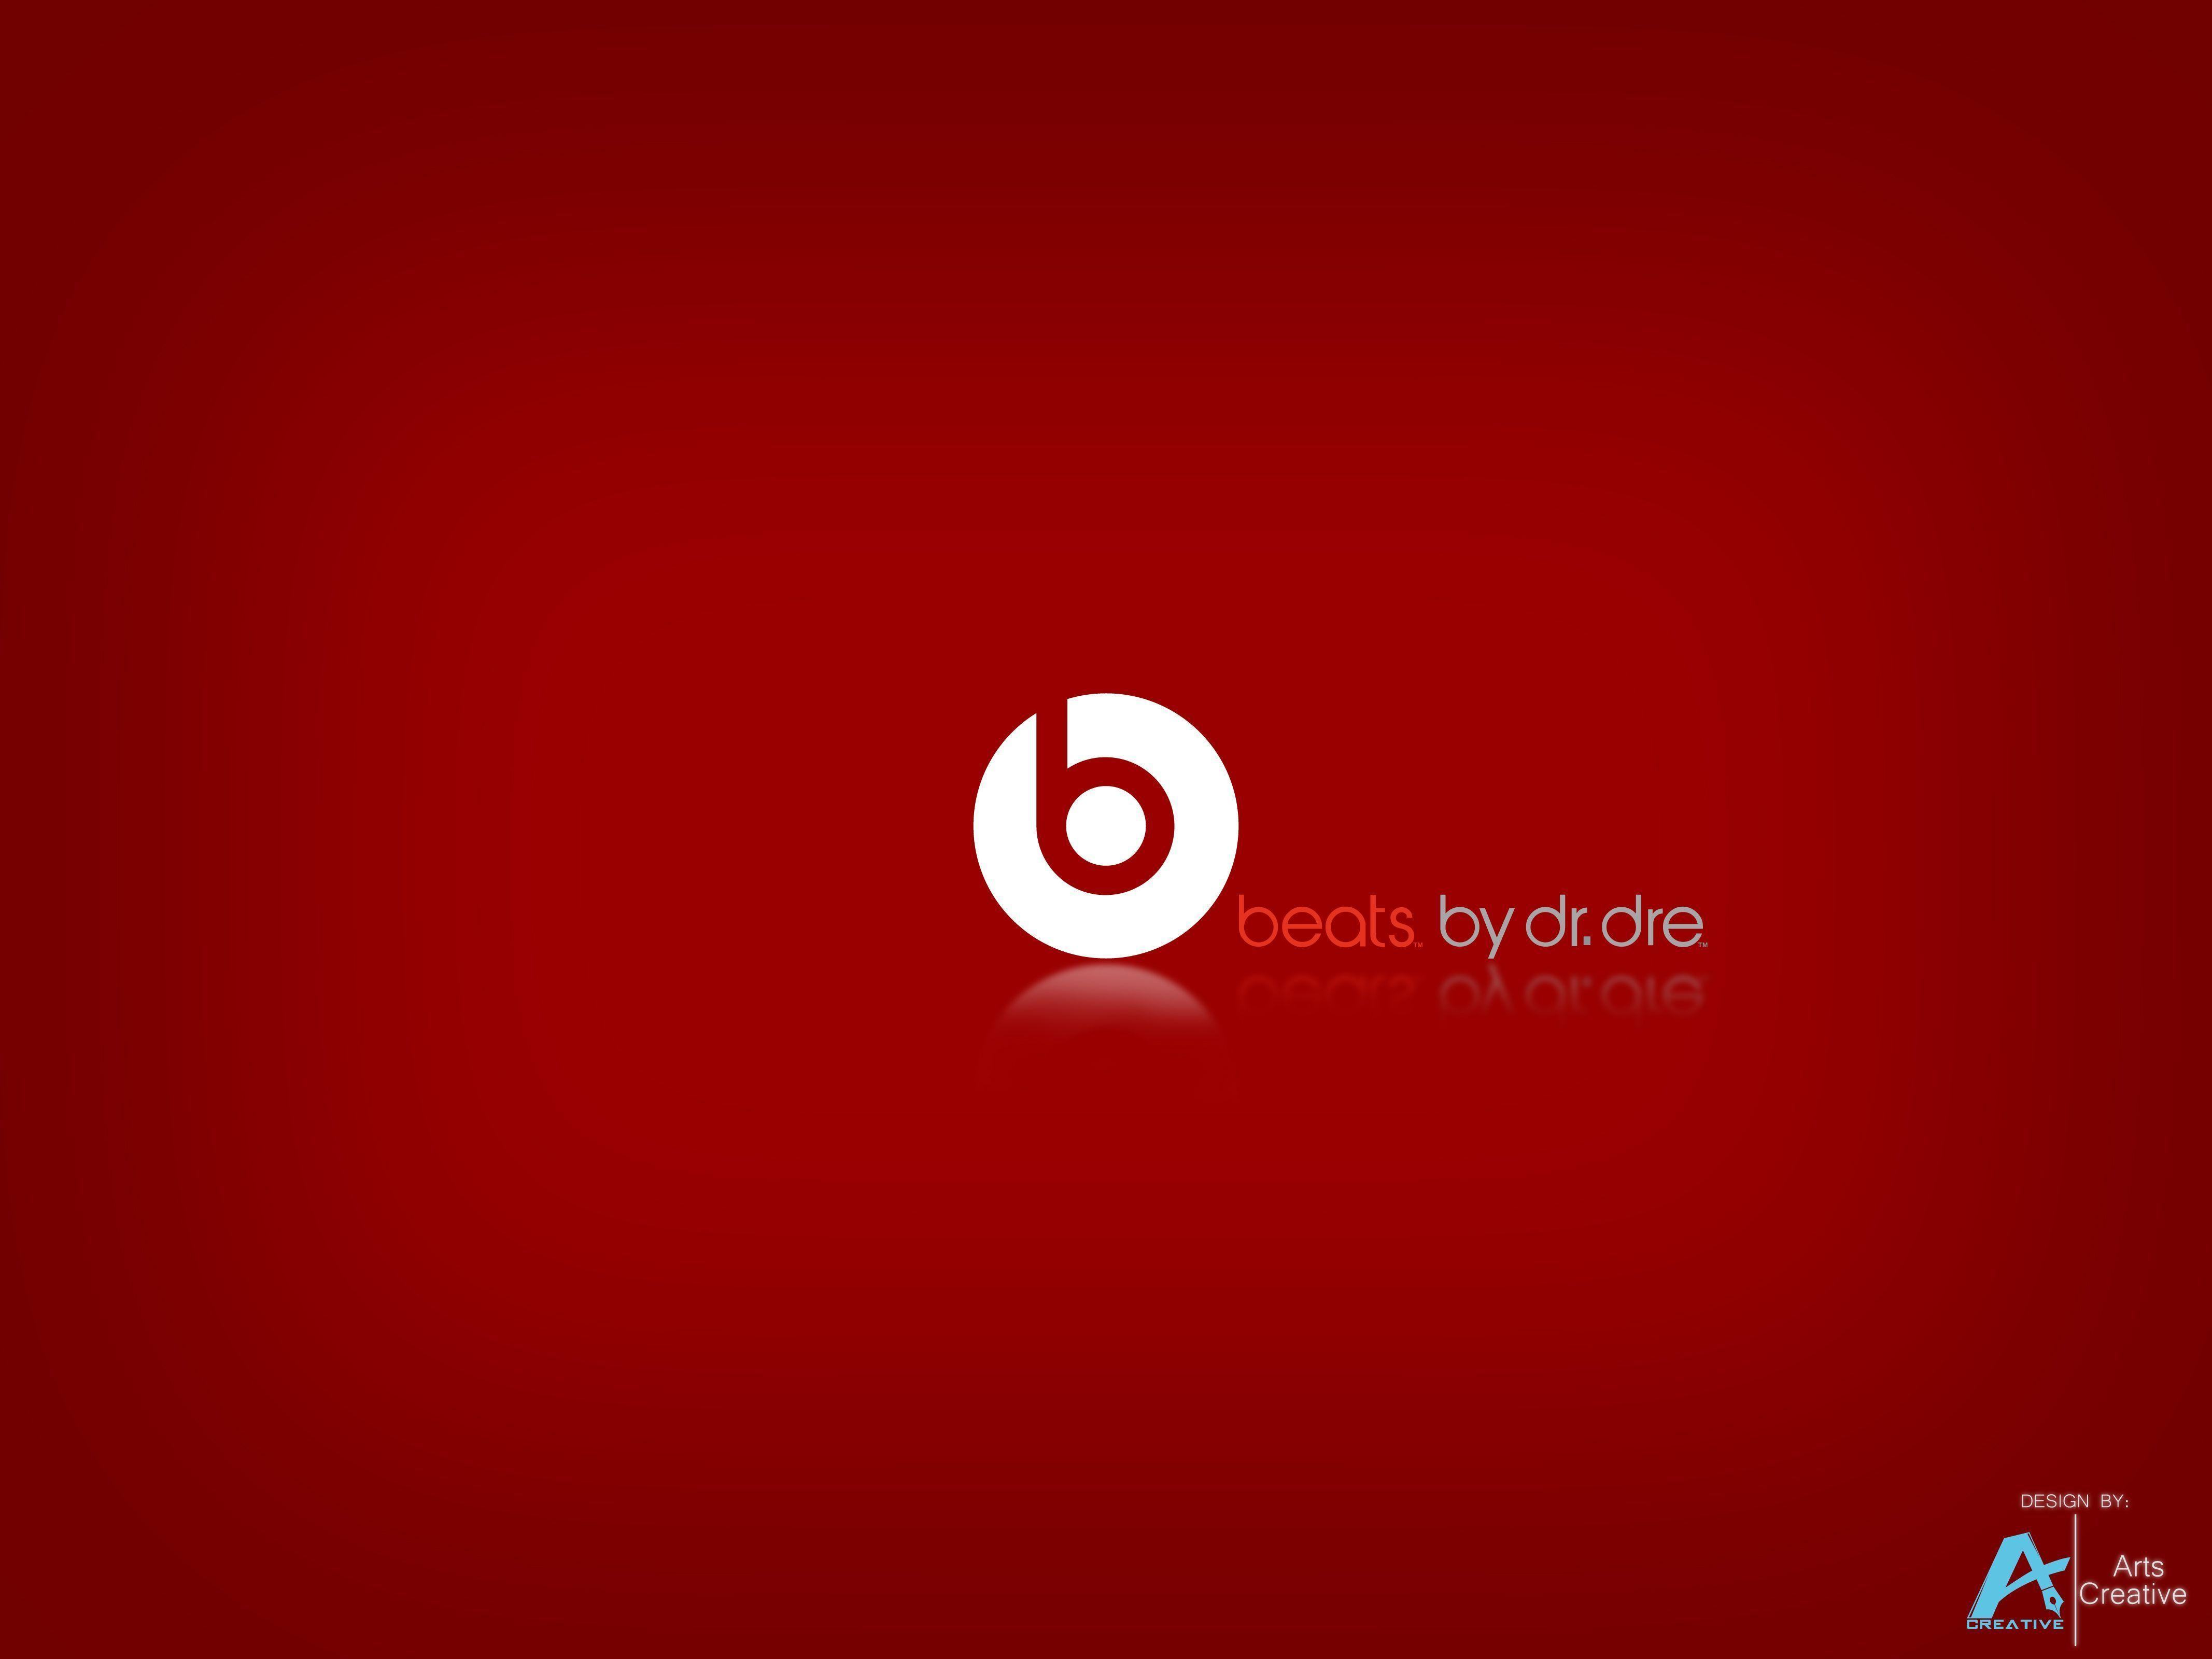 Dr Dre Wallpaper Hd Beats By Dr Dre Wallpapers Wallpaper Cave